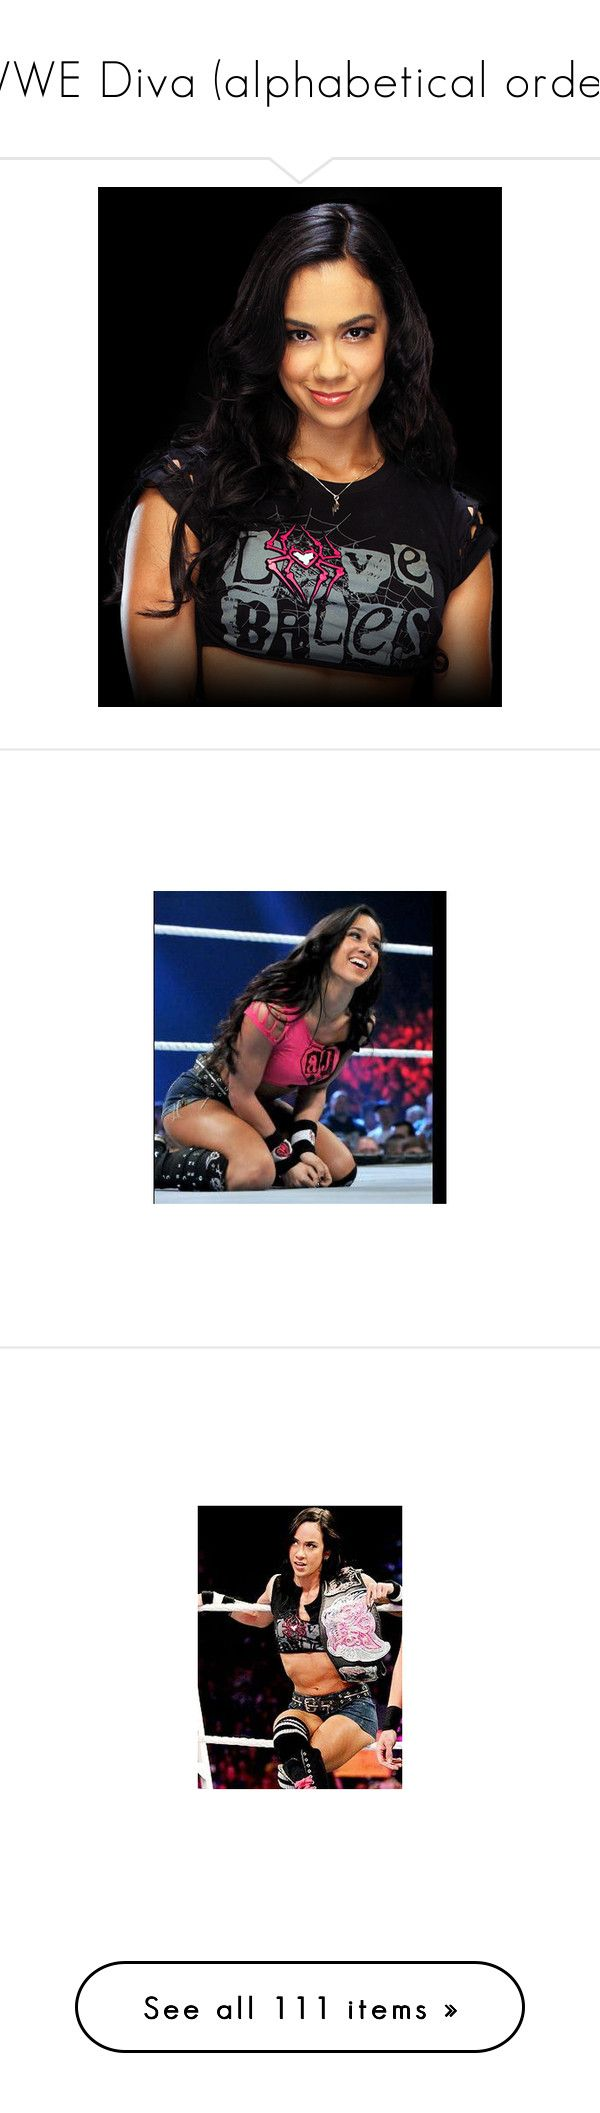 """WWE Diva (alphabetical order)"" by mrsromanreigns916 ❤ liked on Polyvore featuring wwe, aj lee, hair, people, divas, alicia fox, ashley massaro, wrestling attire, bayley and the bella twins"